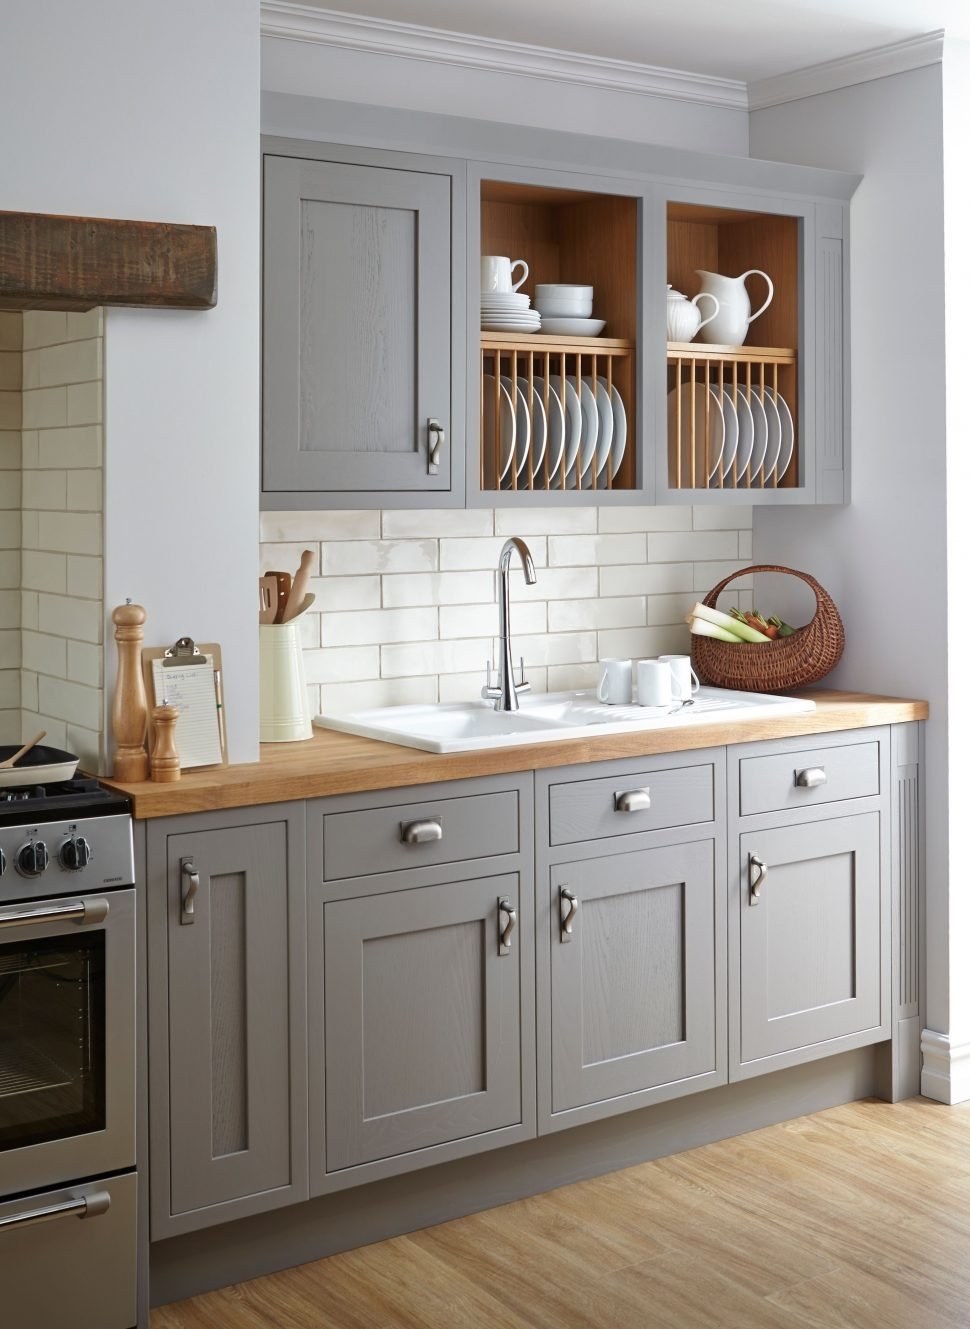 Kitchen Cabinets Amazing Replacement Kitchen Cupboard Doors With White Kitchen Cupboard Doors (Image 12 of 25)